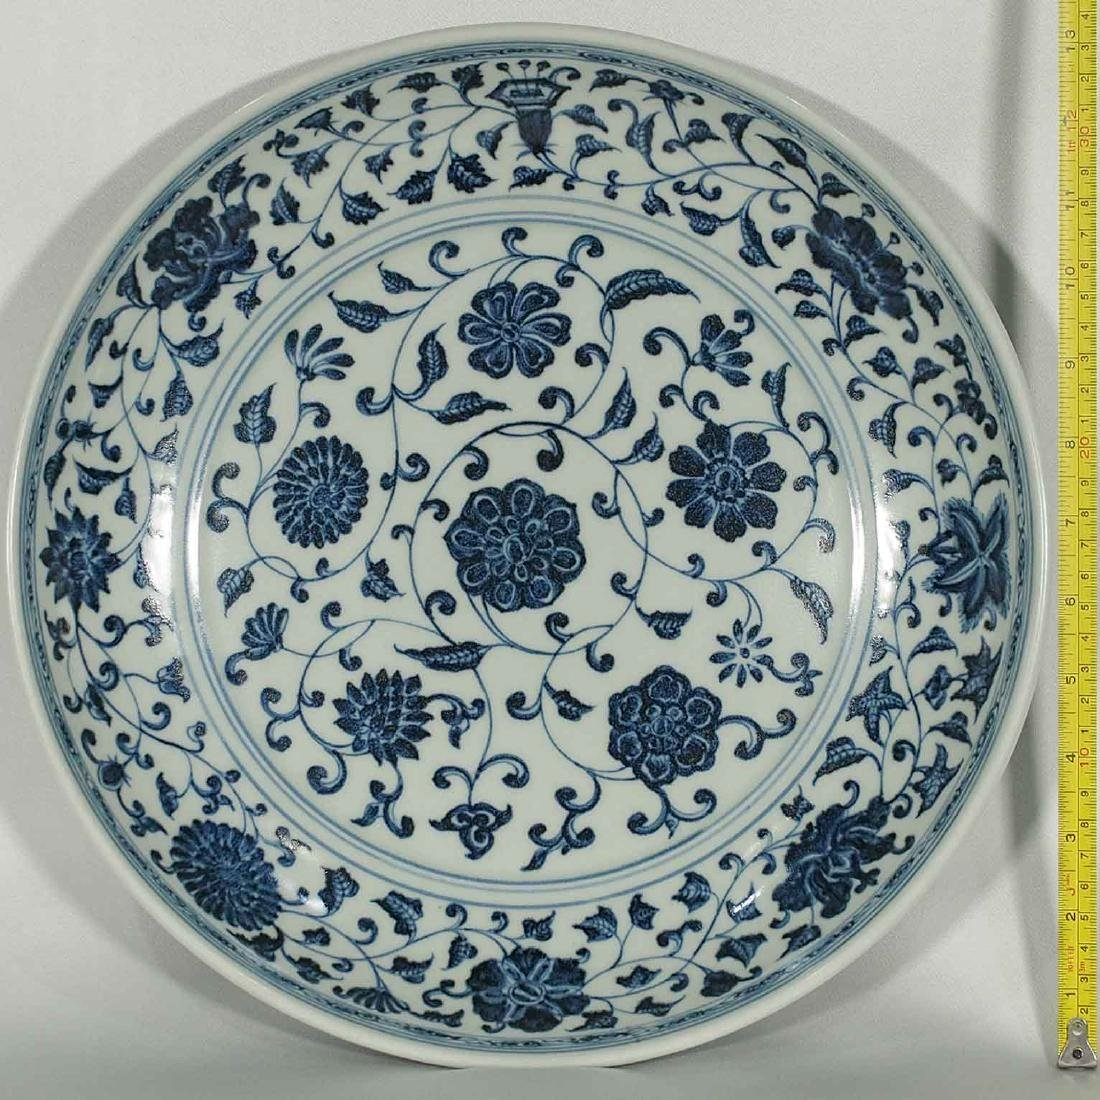 Charger with Floral Design, Yongle, Ming Dynasty - 8